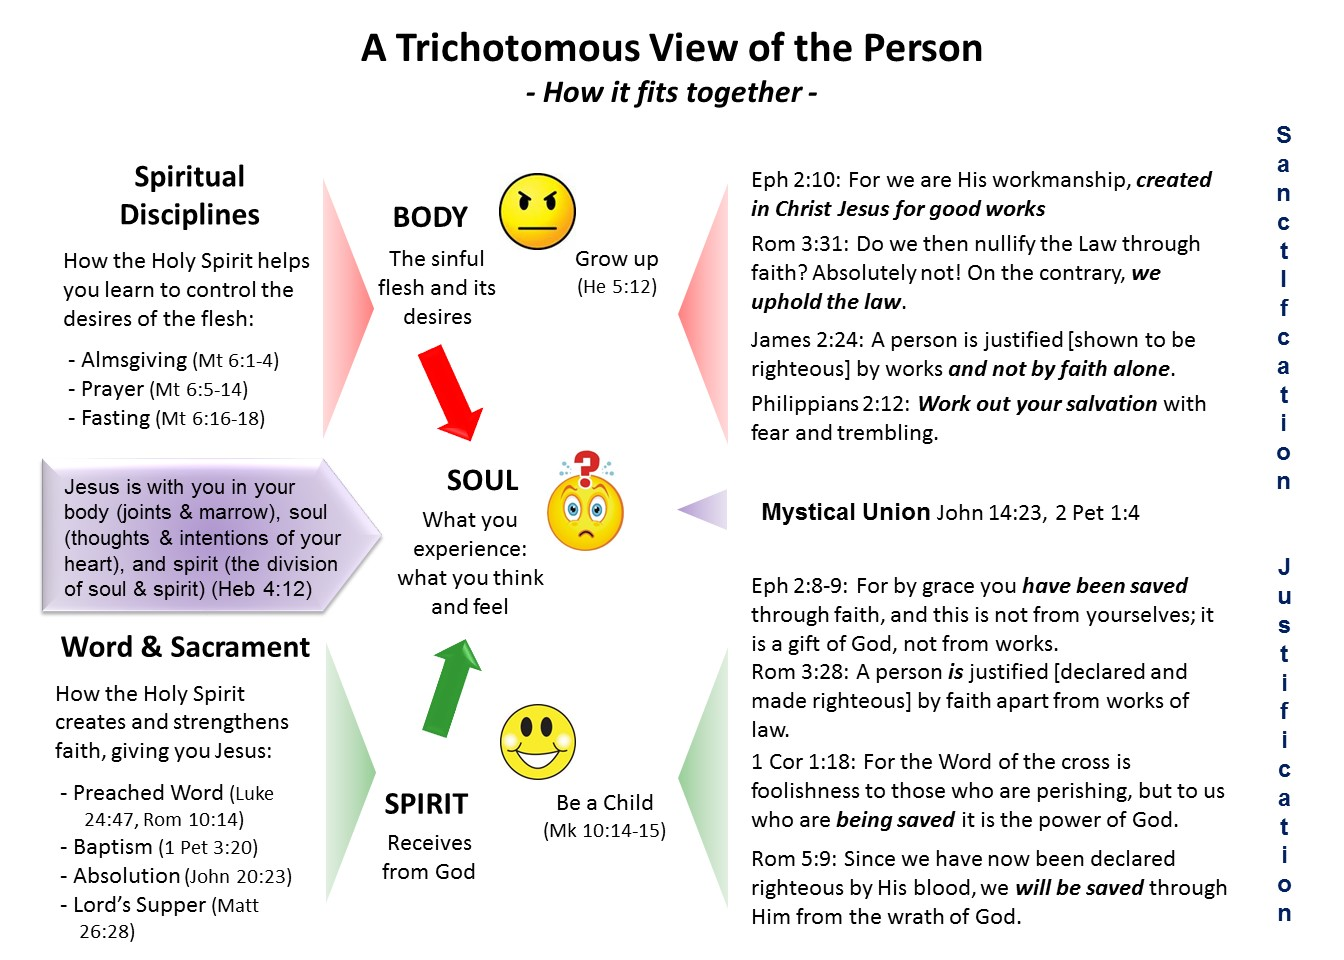 Lesson 12, A Trichotomous View of the Person